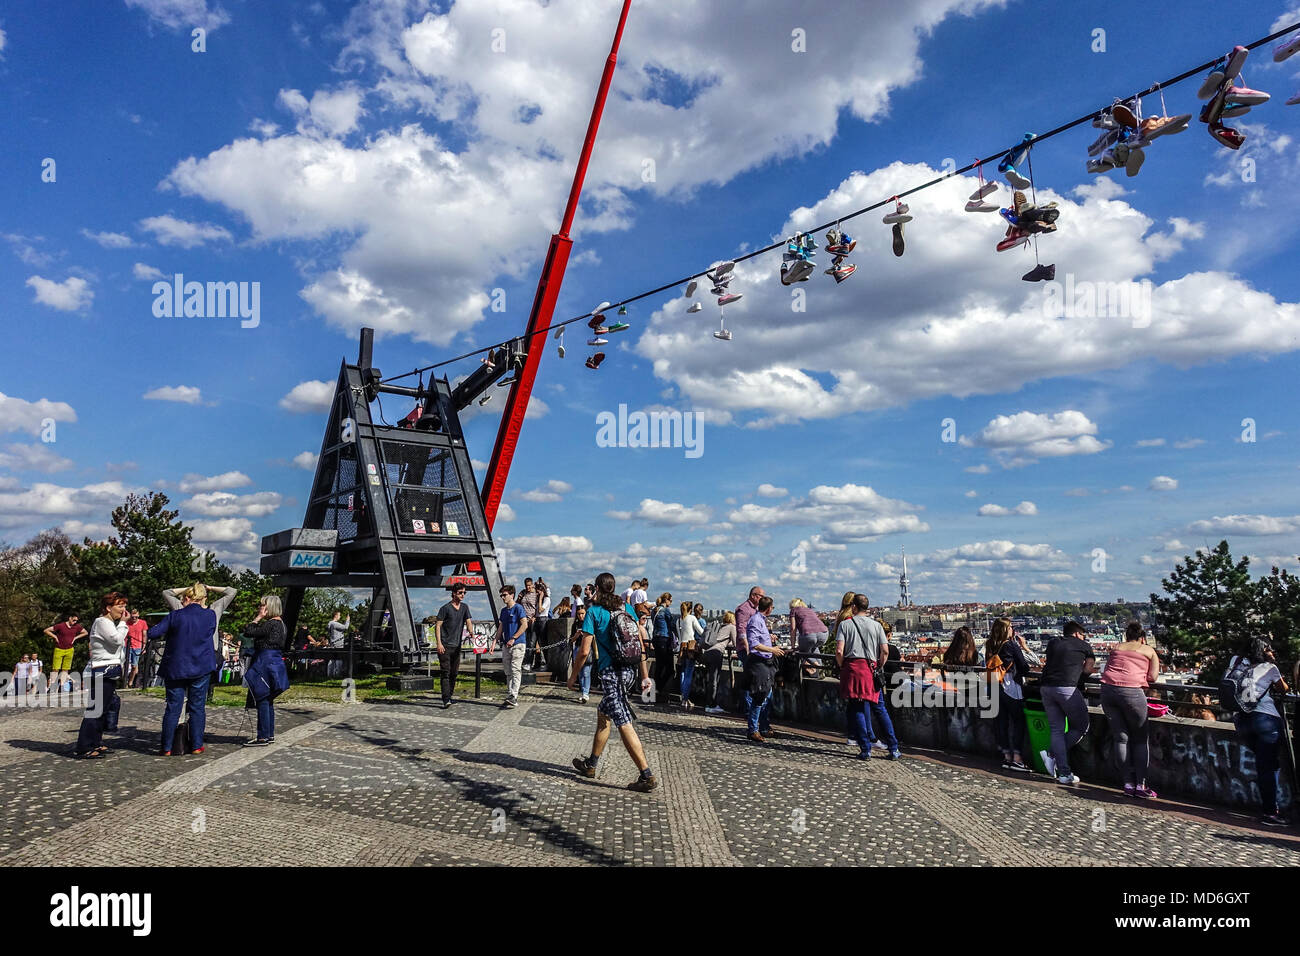 Former Place of Stalin's Monument, Now Popular Place to Meet, People at Prague Metronome, Prague Letna Park Prague, Czech Republic - Stock Image